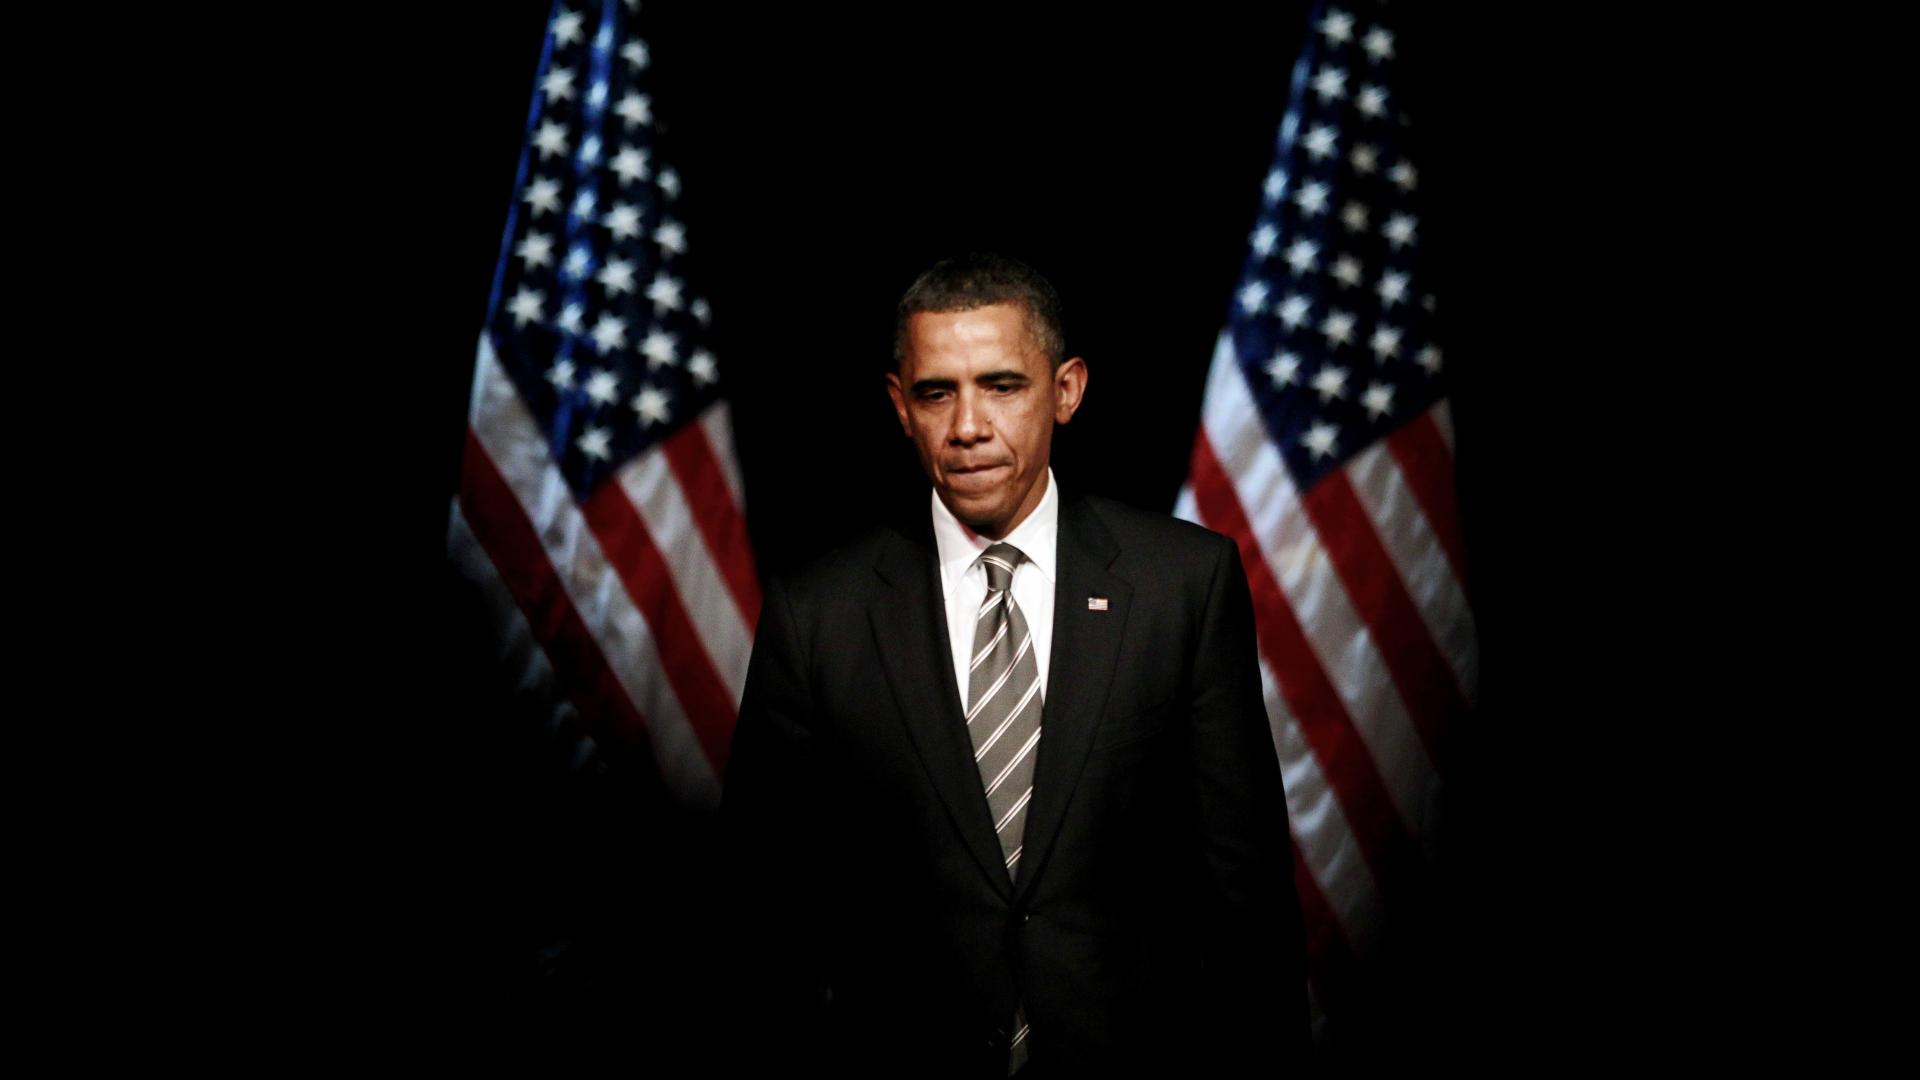 Barack Obama Presiden USA Wallpapers 1920x1080